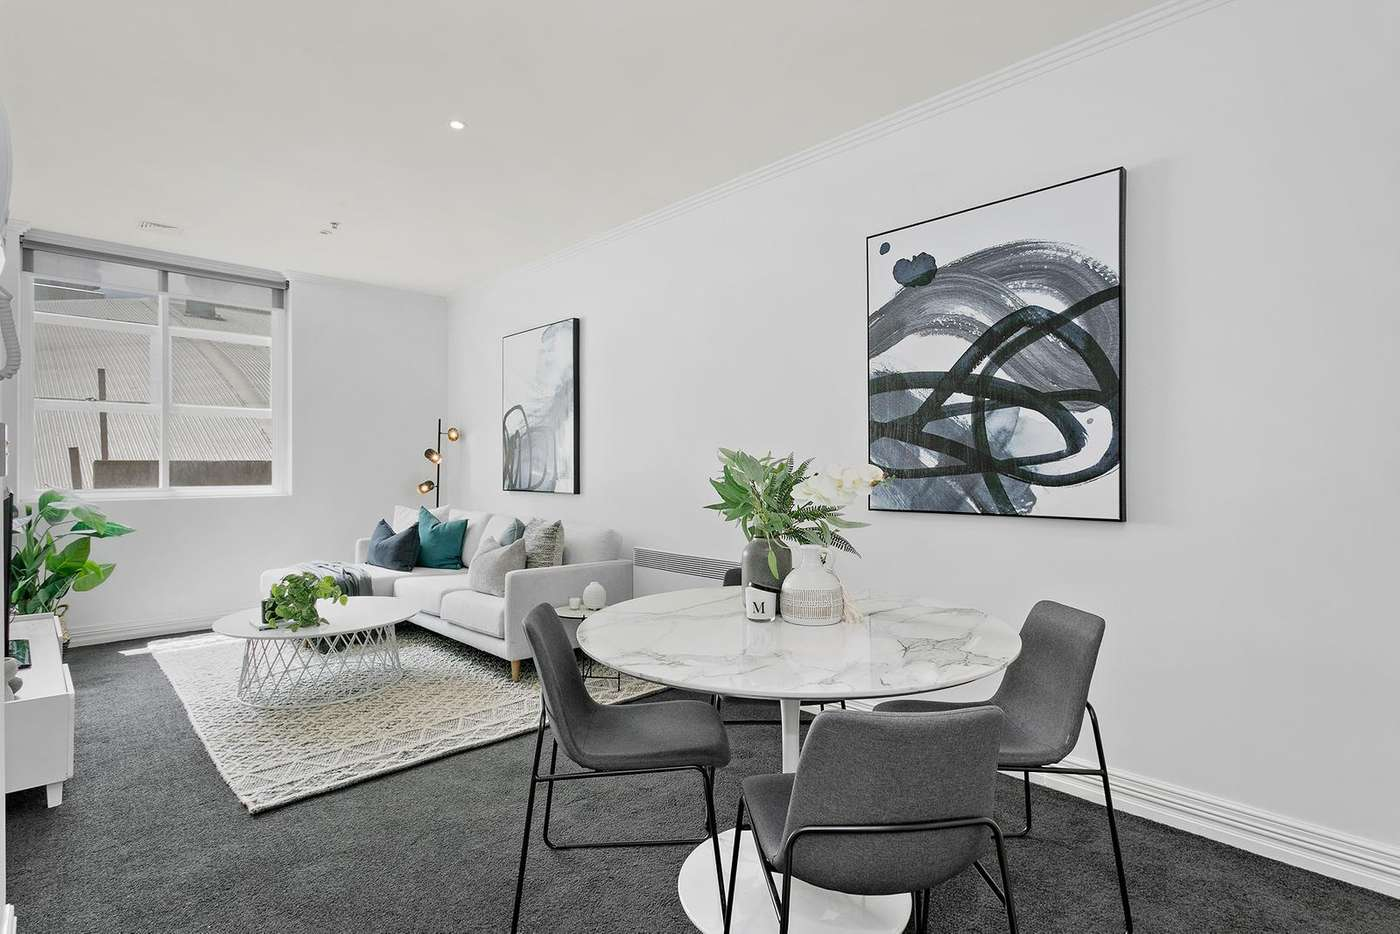 Main view of Homely apartment listing, 503/166 Flinders Street, Melbourne VIC 3000